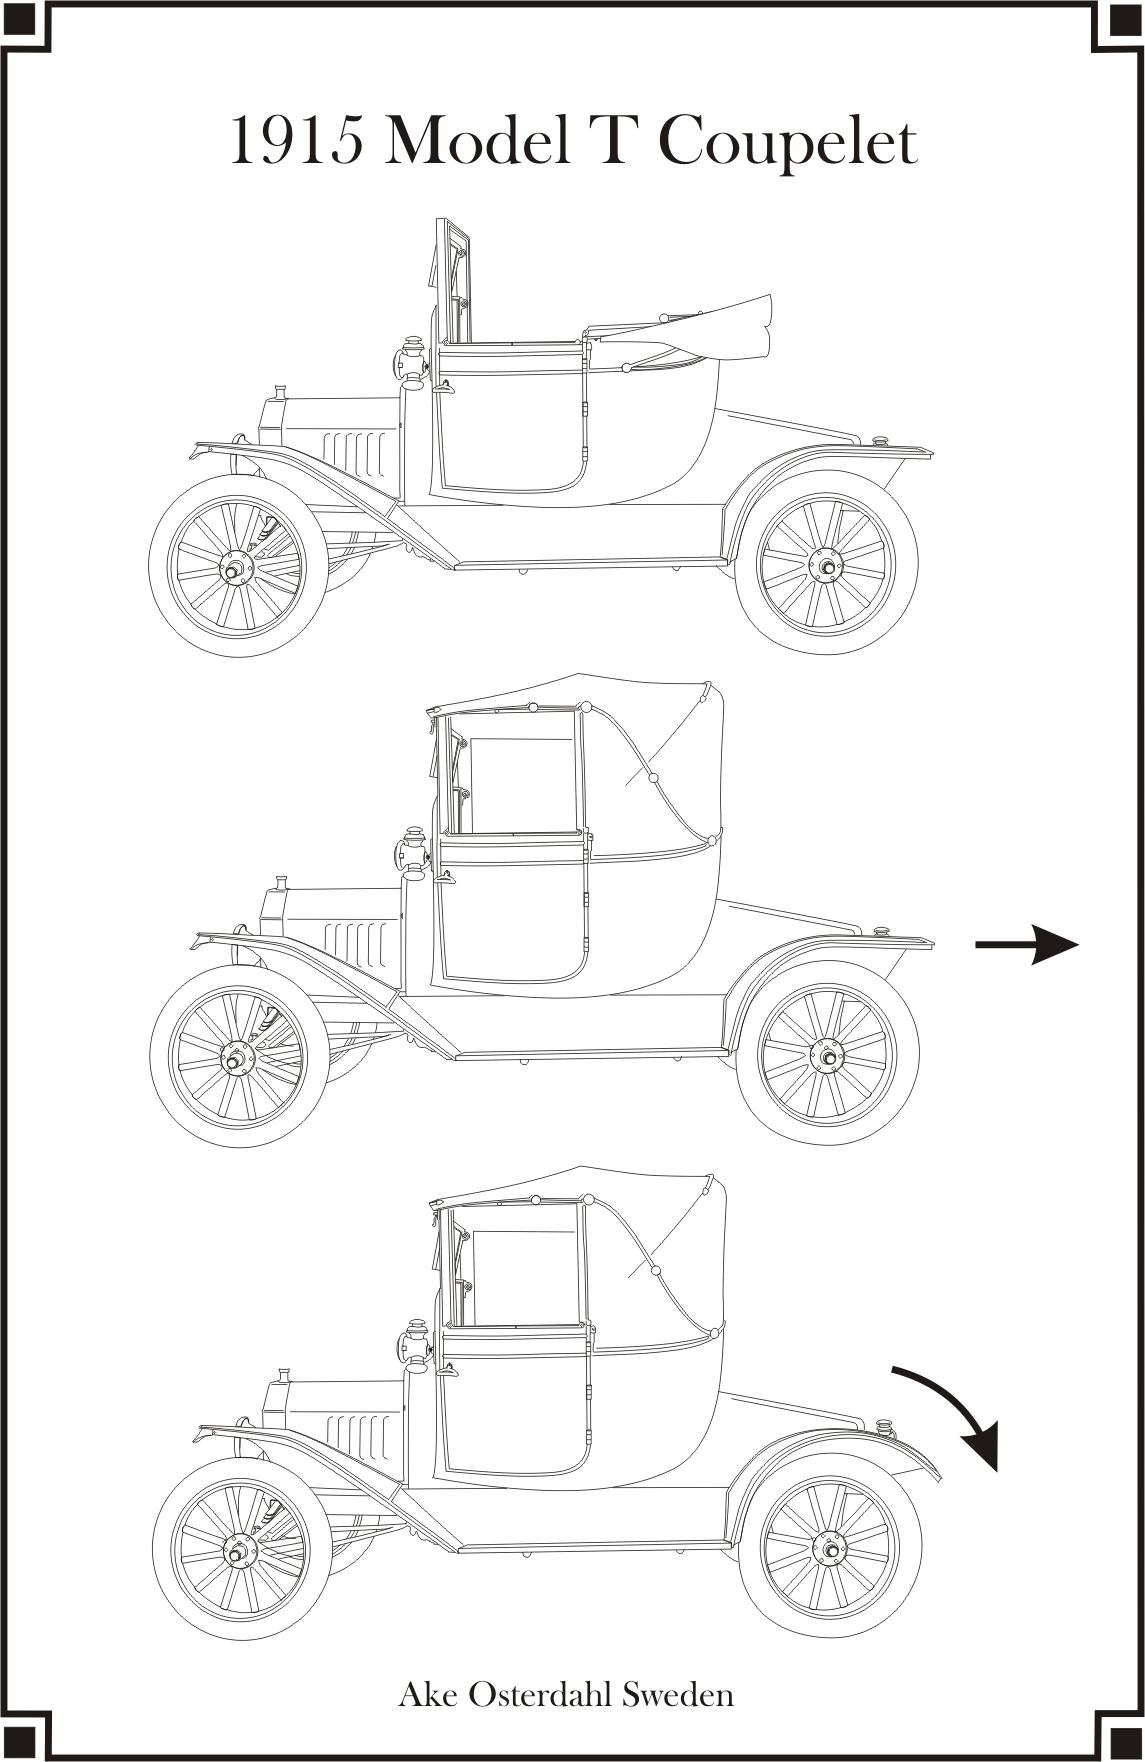 model t ford forum  illustrations from coupelet to coupe